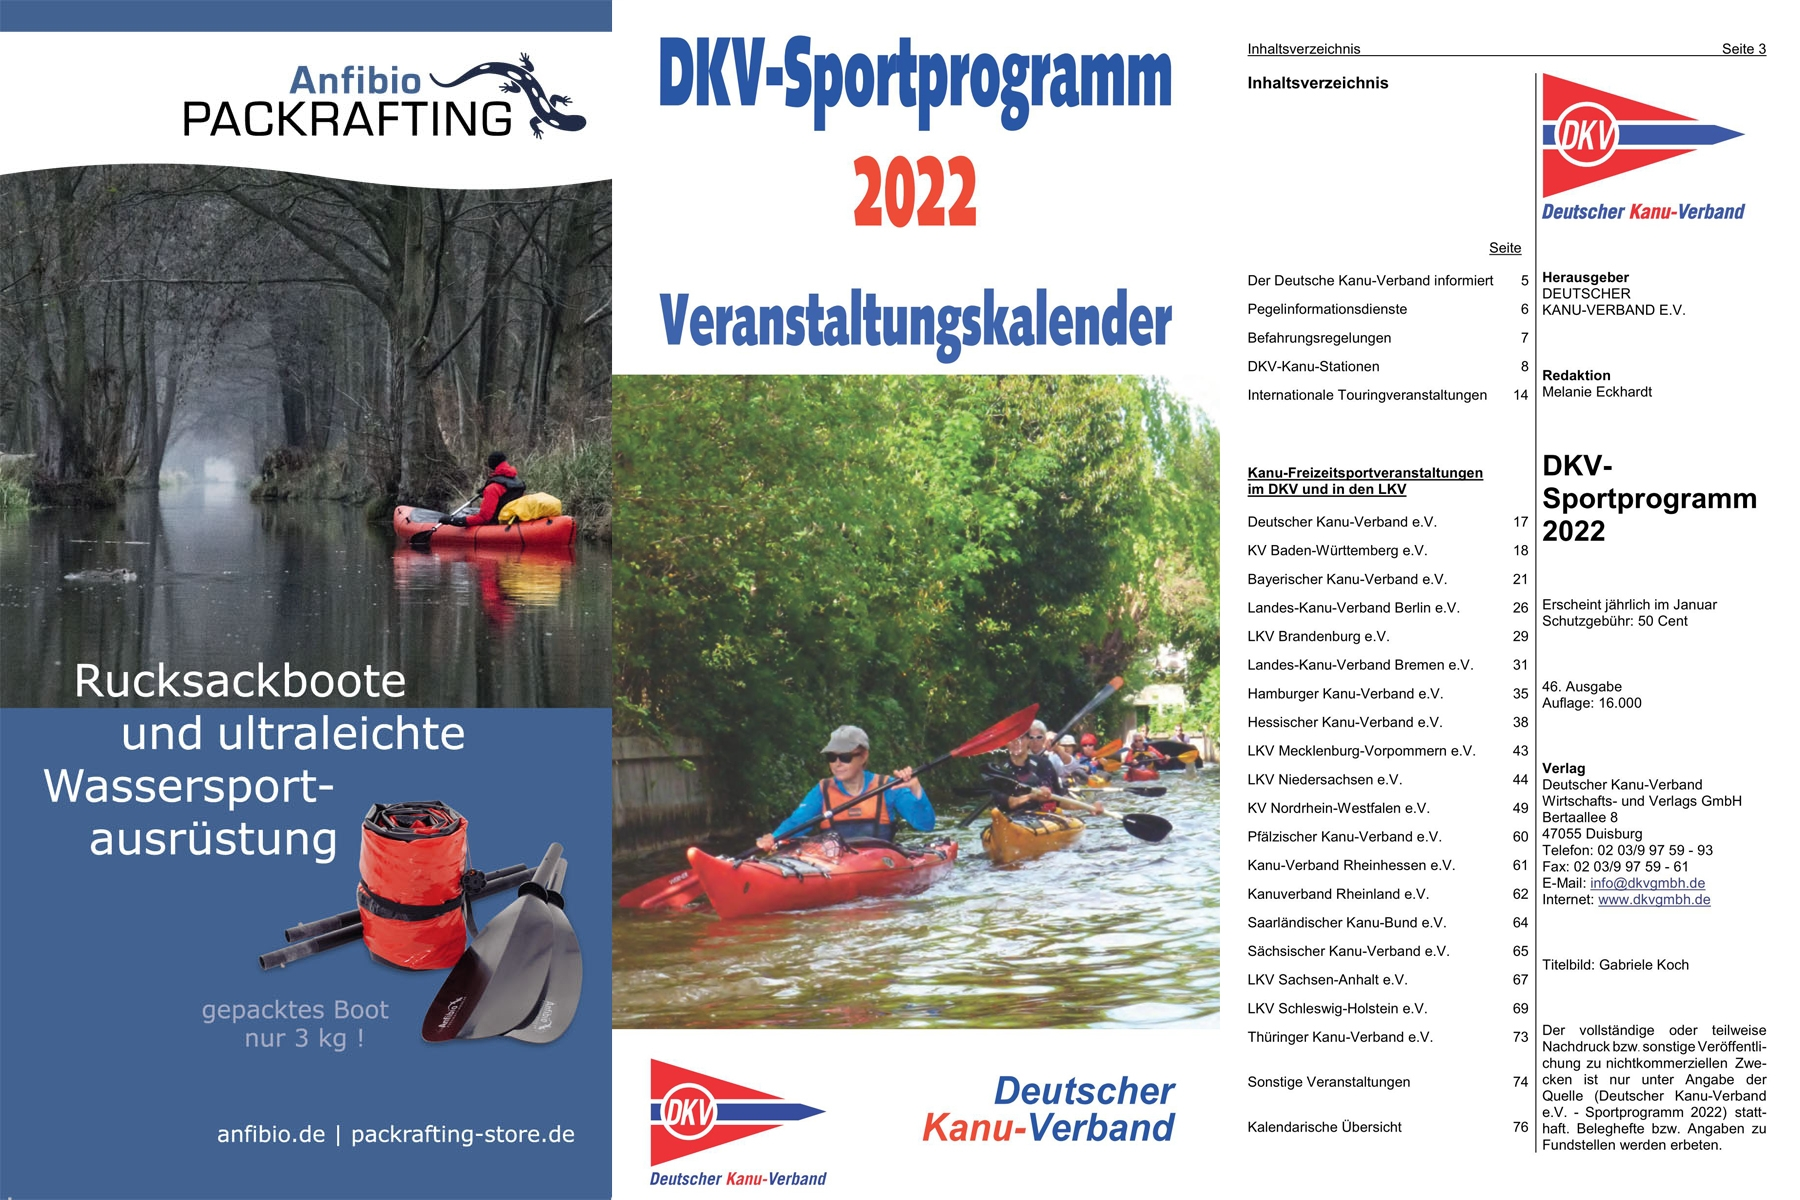 DKV sports program 2019 (German)